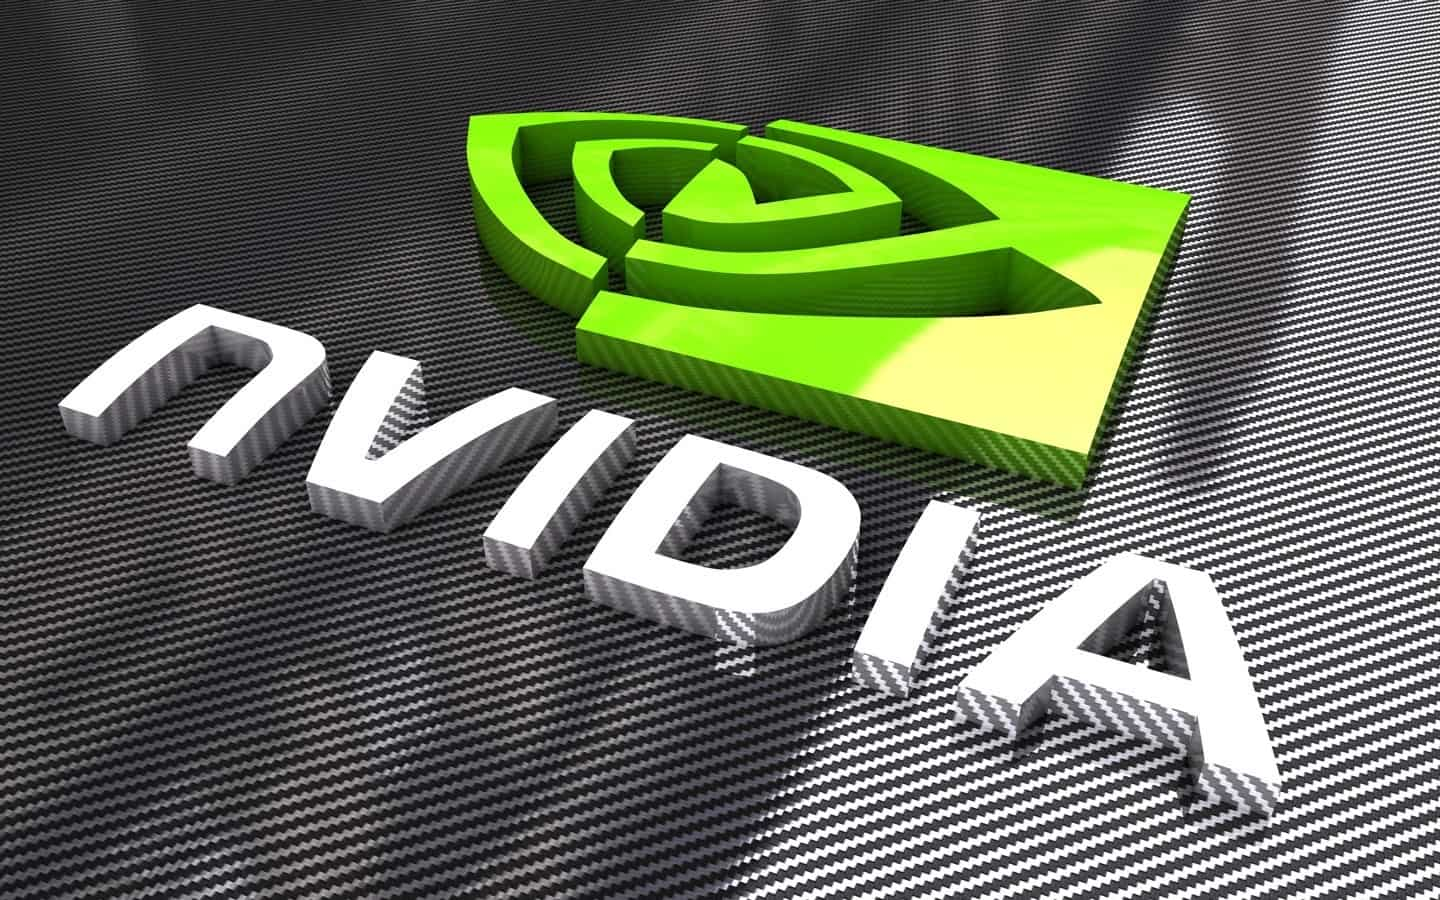 Ya disponible para su descarga el driver Nvidia GeForce 361.43 WHQL para Windows 10